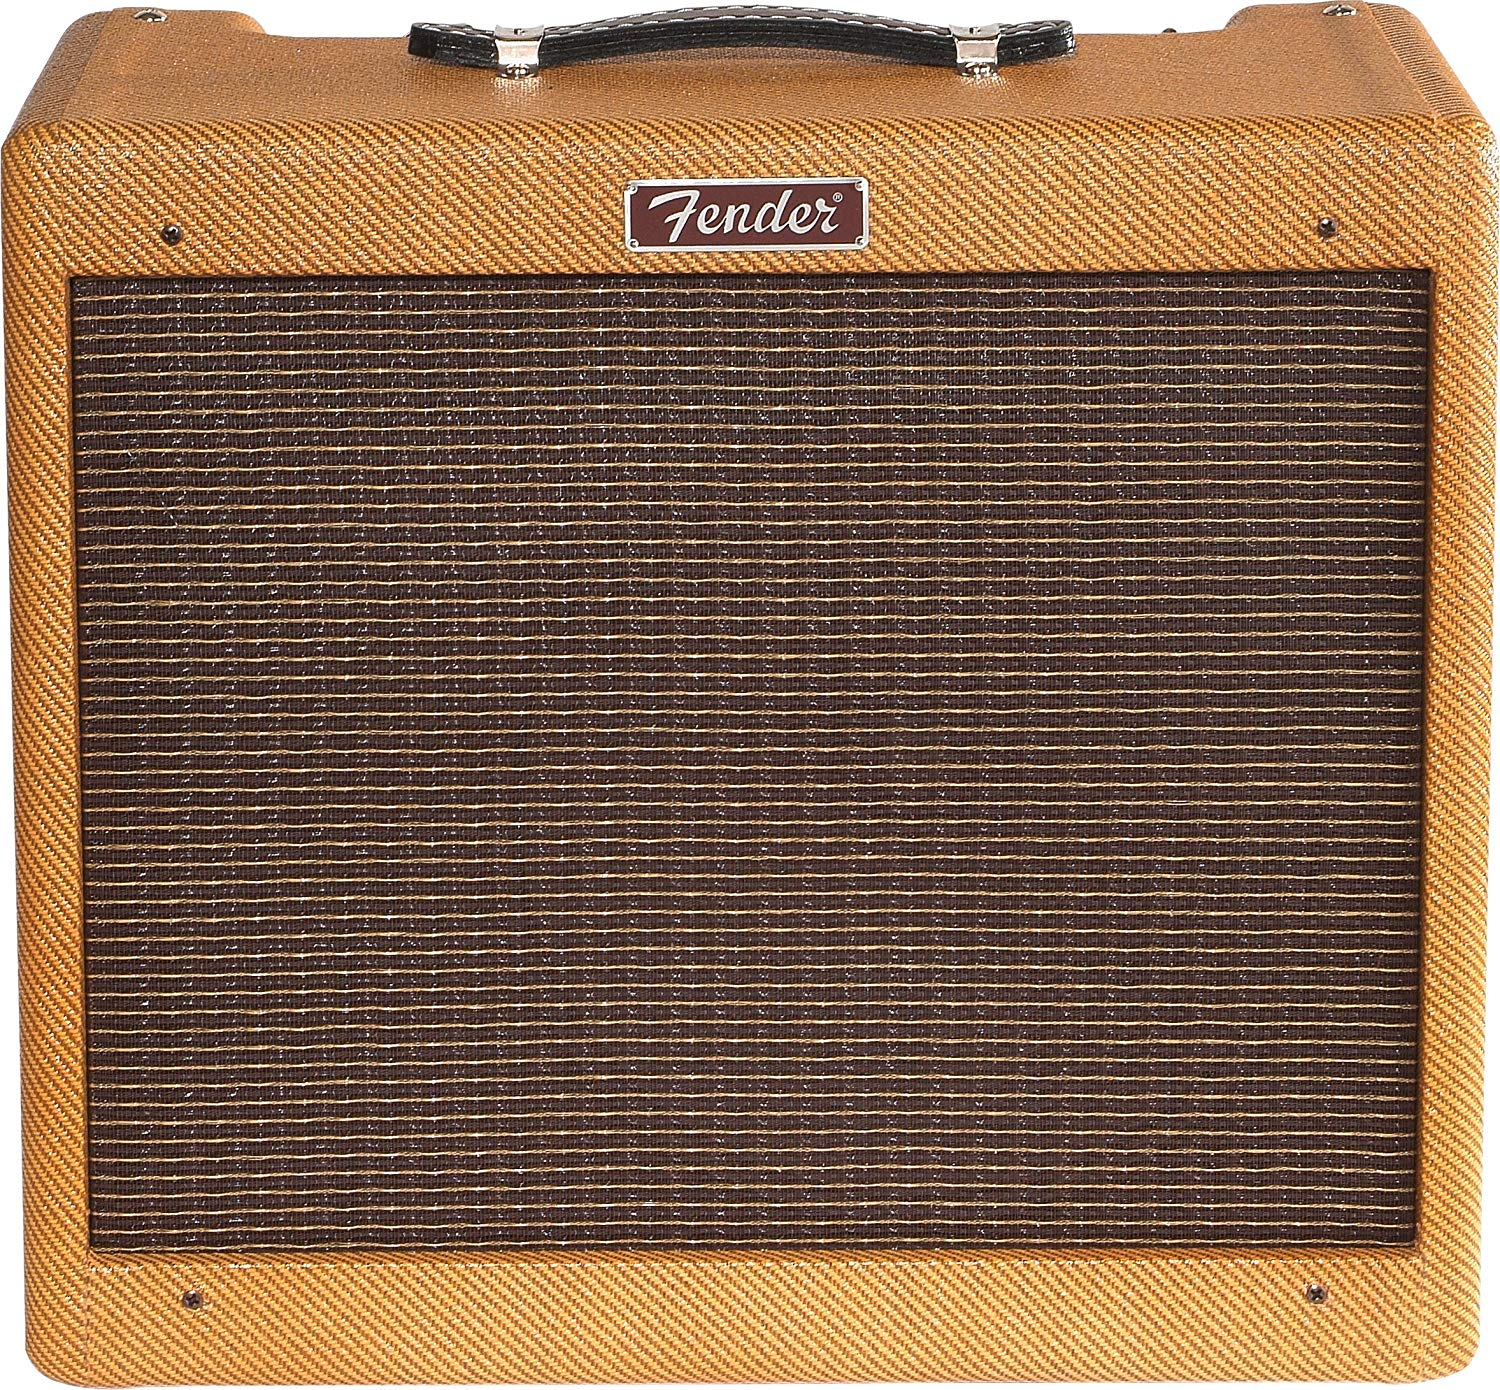 Front View of the Fender Hot Rod LTD Tube Amplifier